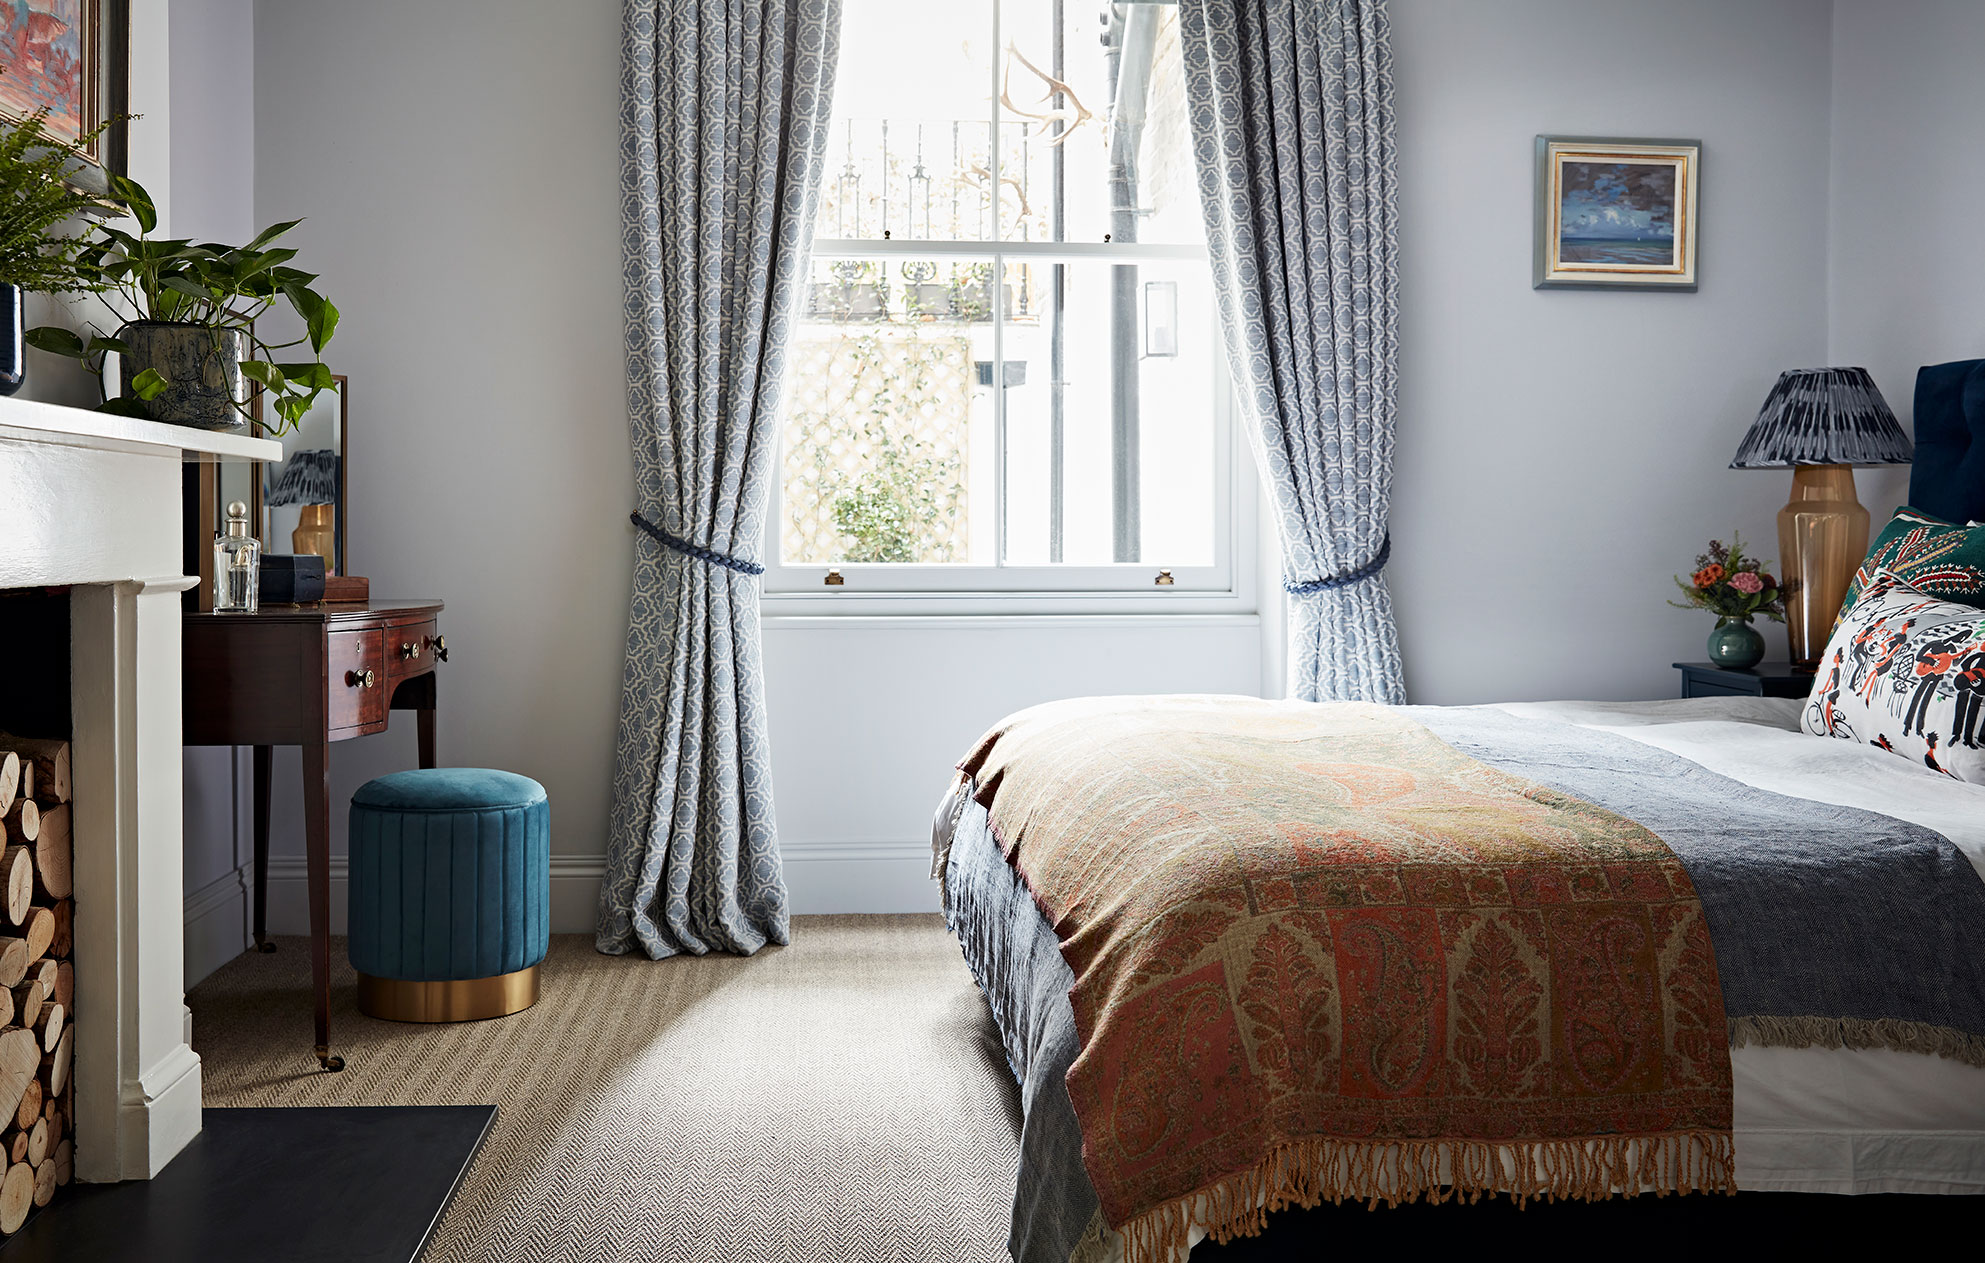 Cosy designer bedroom with unusual throws, grey patterned curtains and dressing table